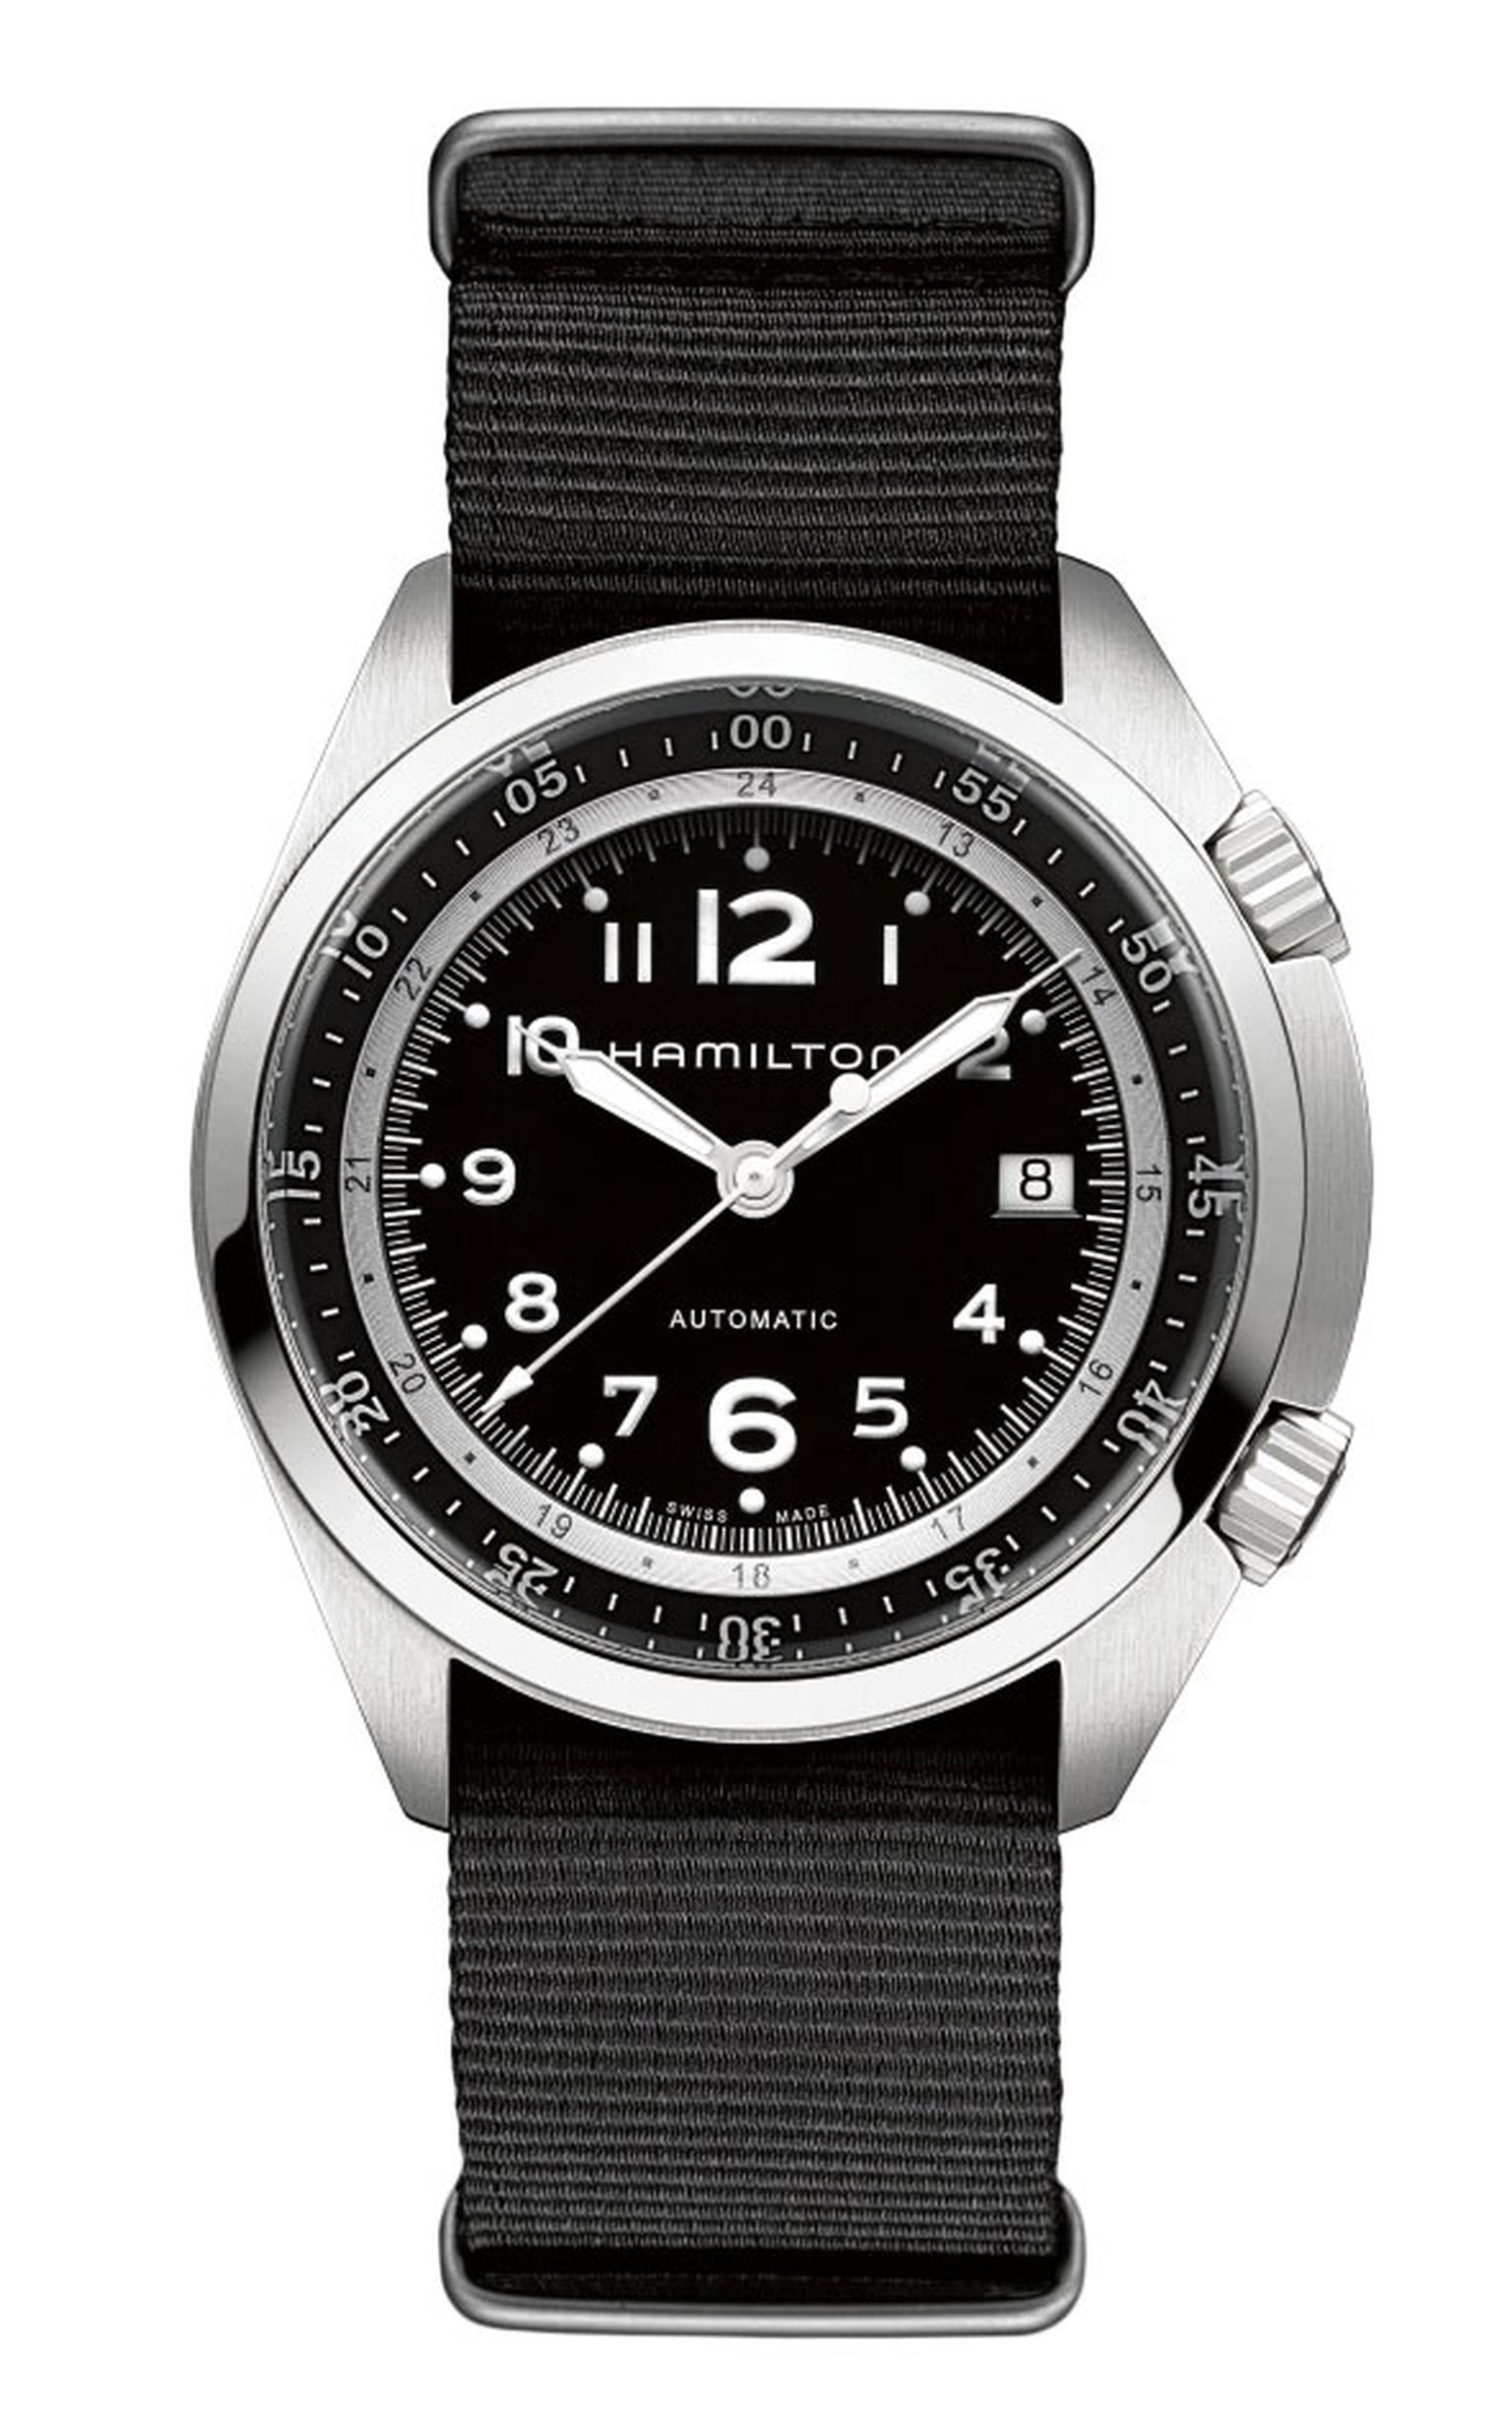 Hamilton's 80-hour power reserve steel Khaki Pilot Pioneer featuring a black NATO fabric strap.